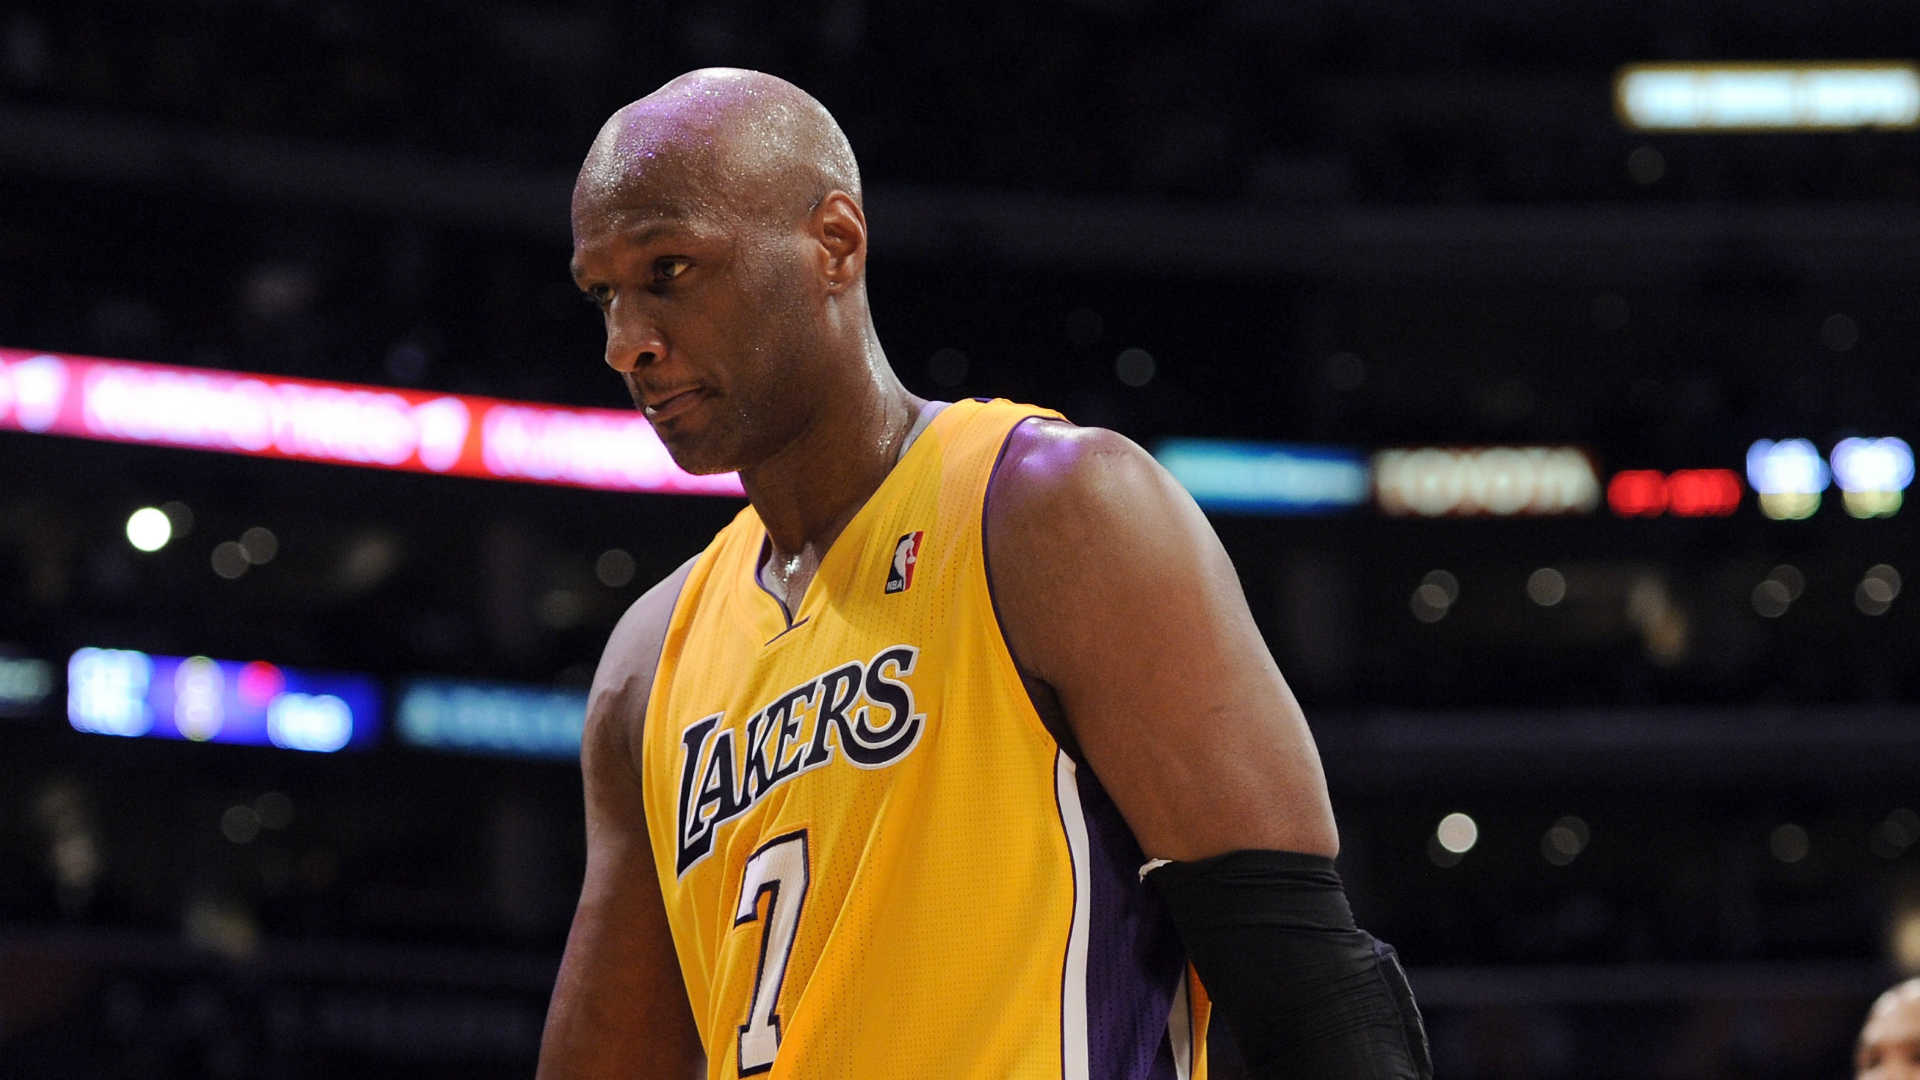 Lamar Odom: Trade from Lakers